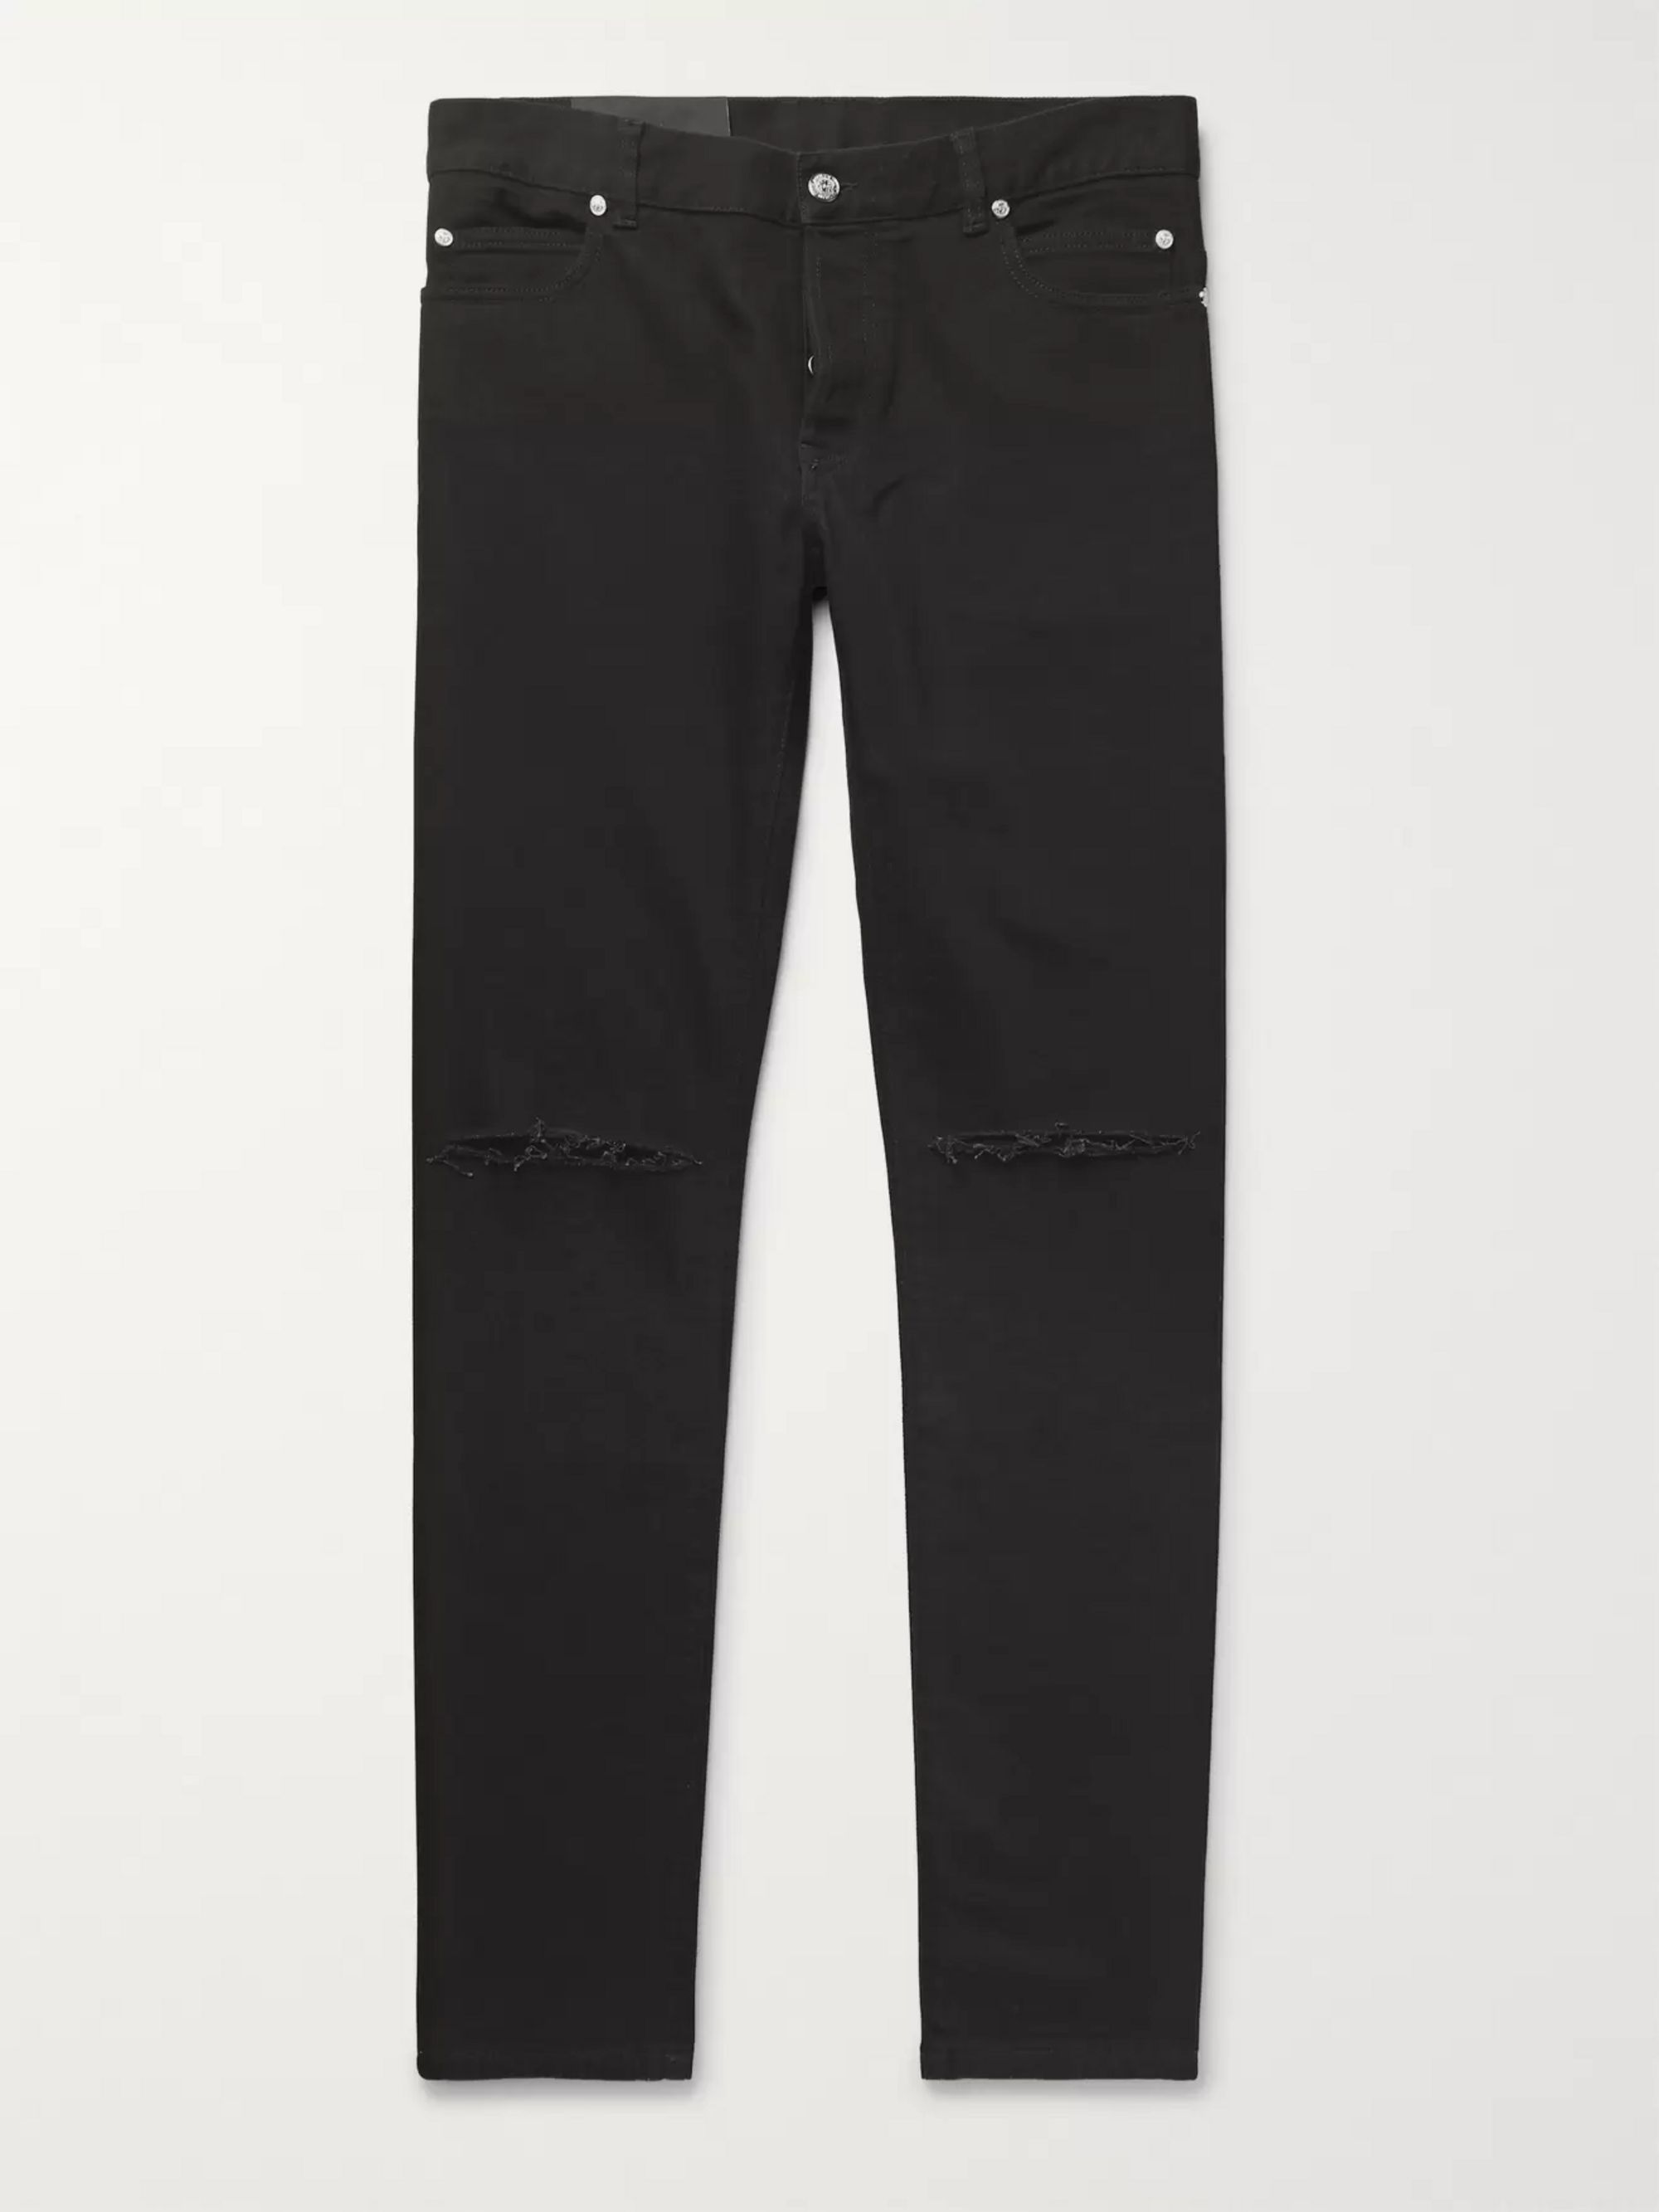 Slim Fit Logo Embroidered Distressed Denim Jeans by Balmain